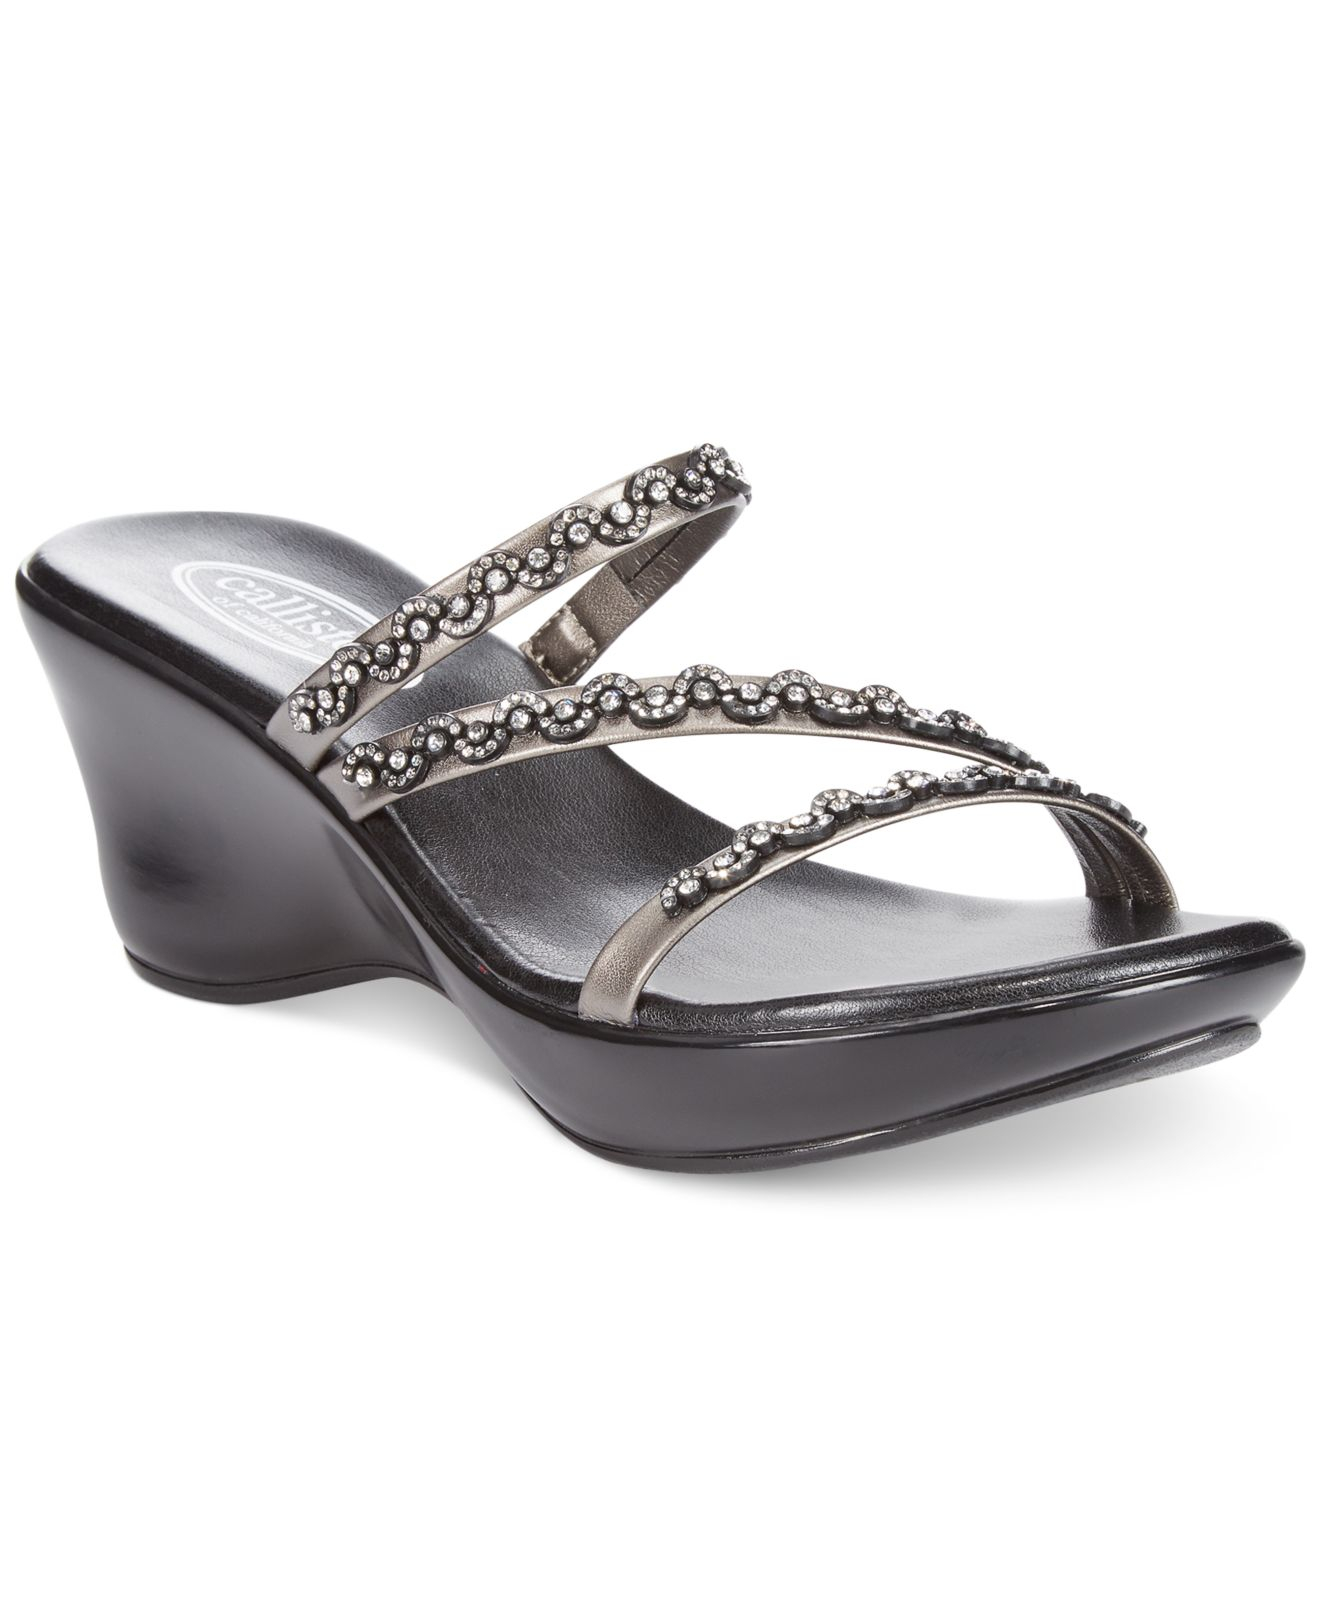 6a8620d22 Lyst - Callisto Shana Thong Wedge Sandals in Black